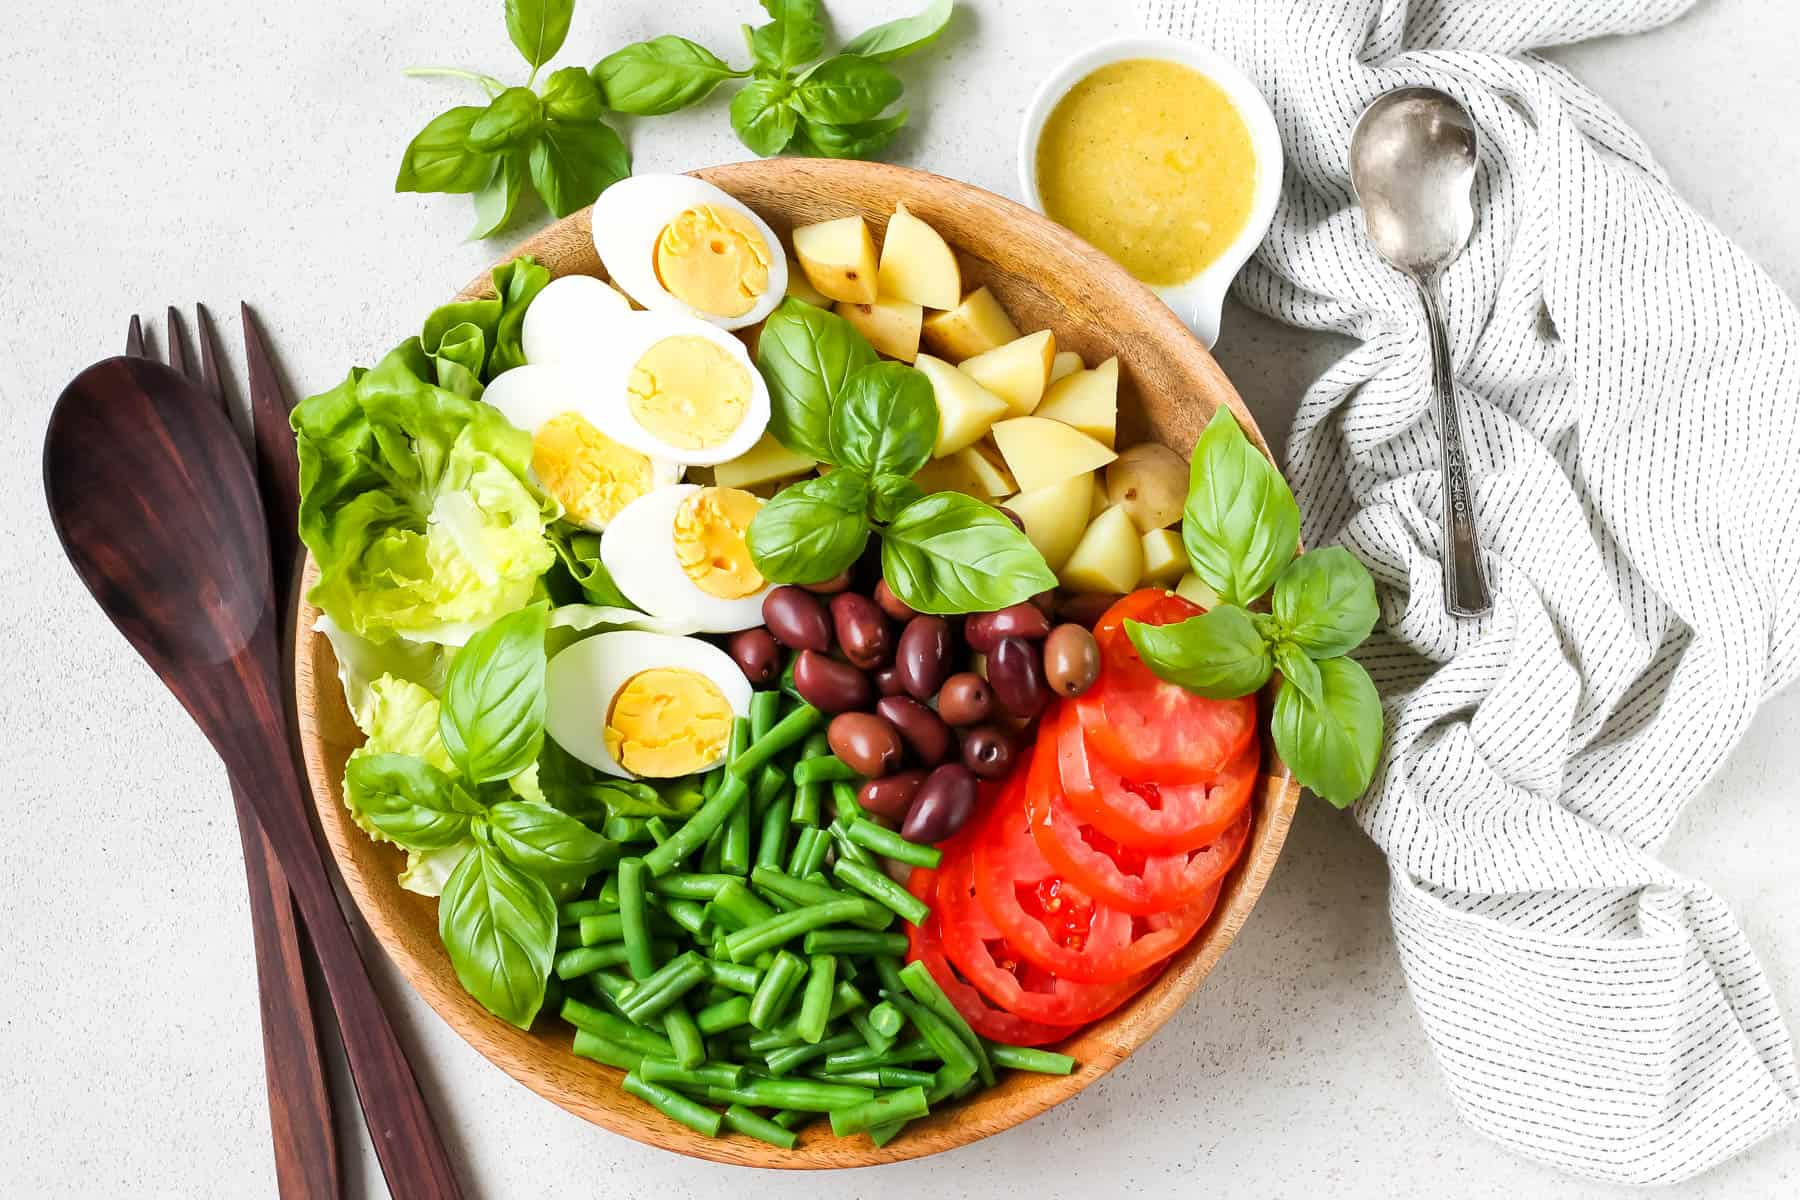 overhead photo of a vegetarian nicoise salad arranged in a wooden bowl with a small pot of dressing to the side